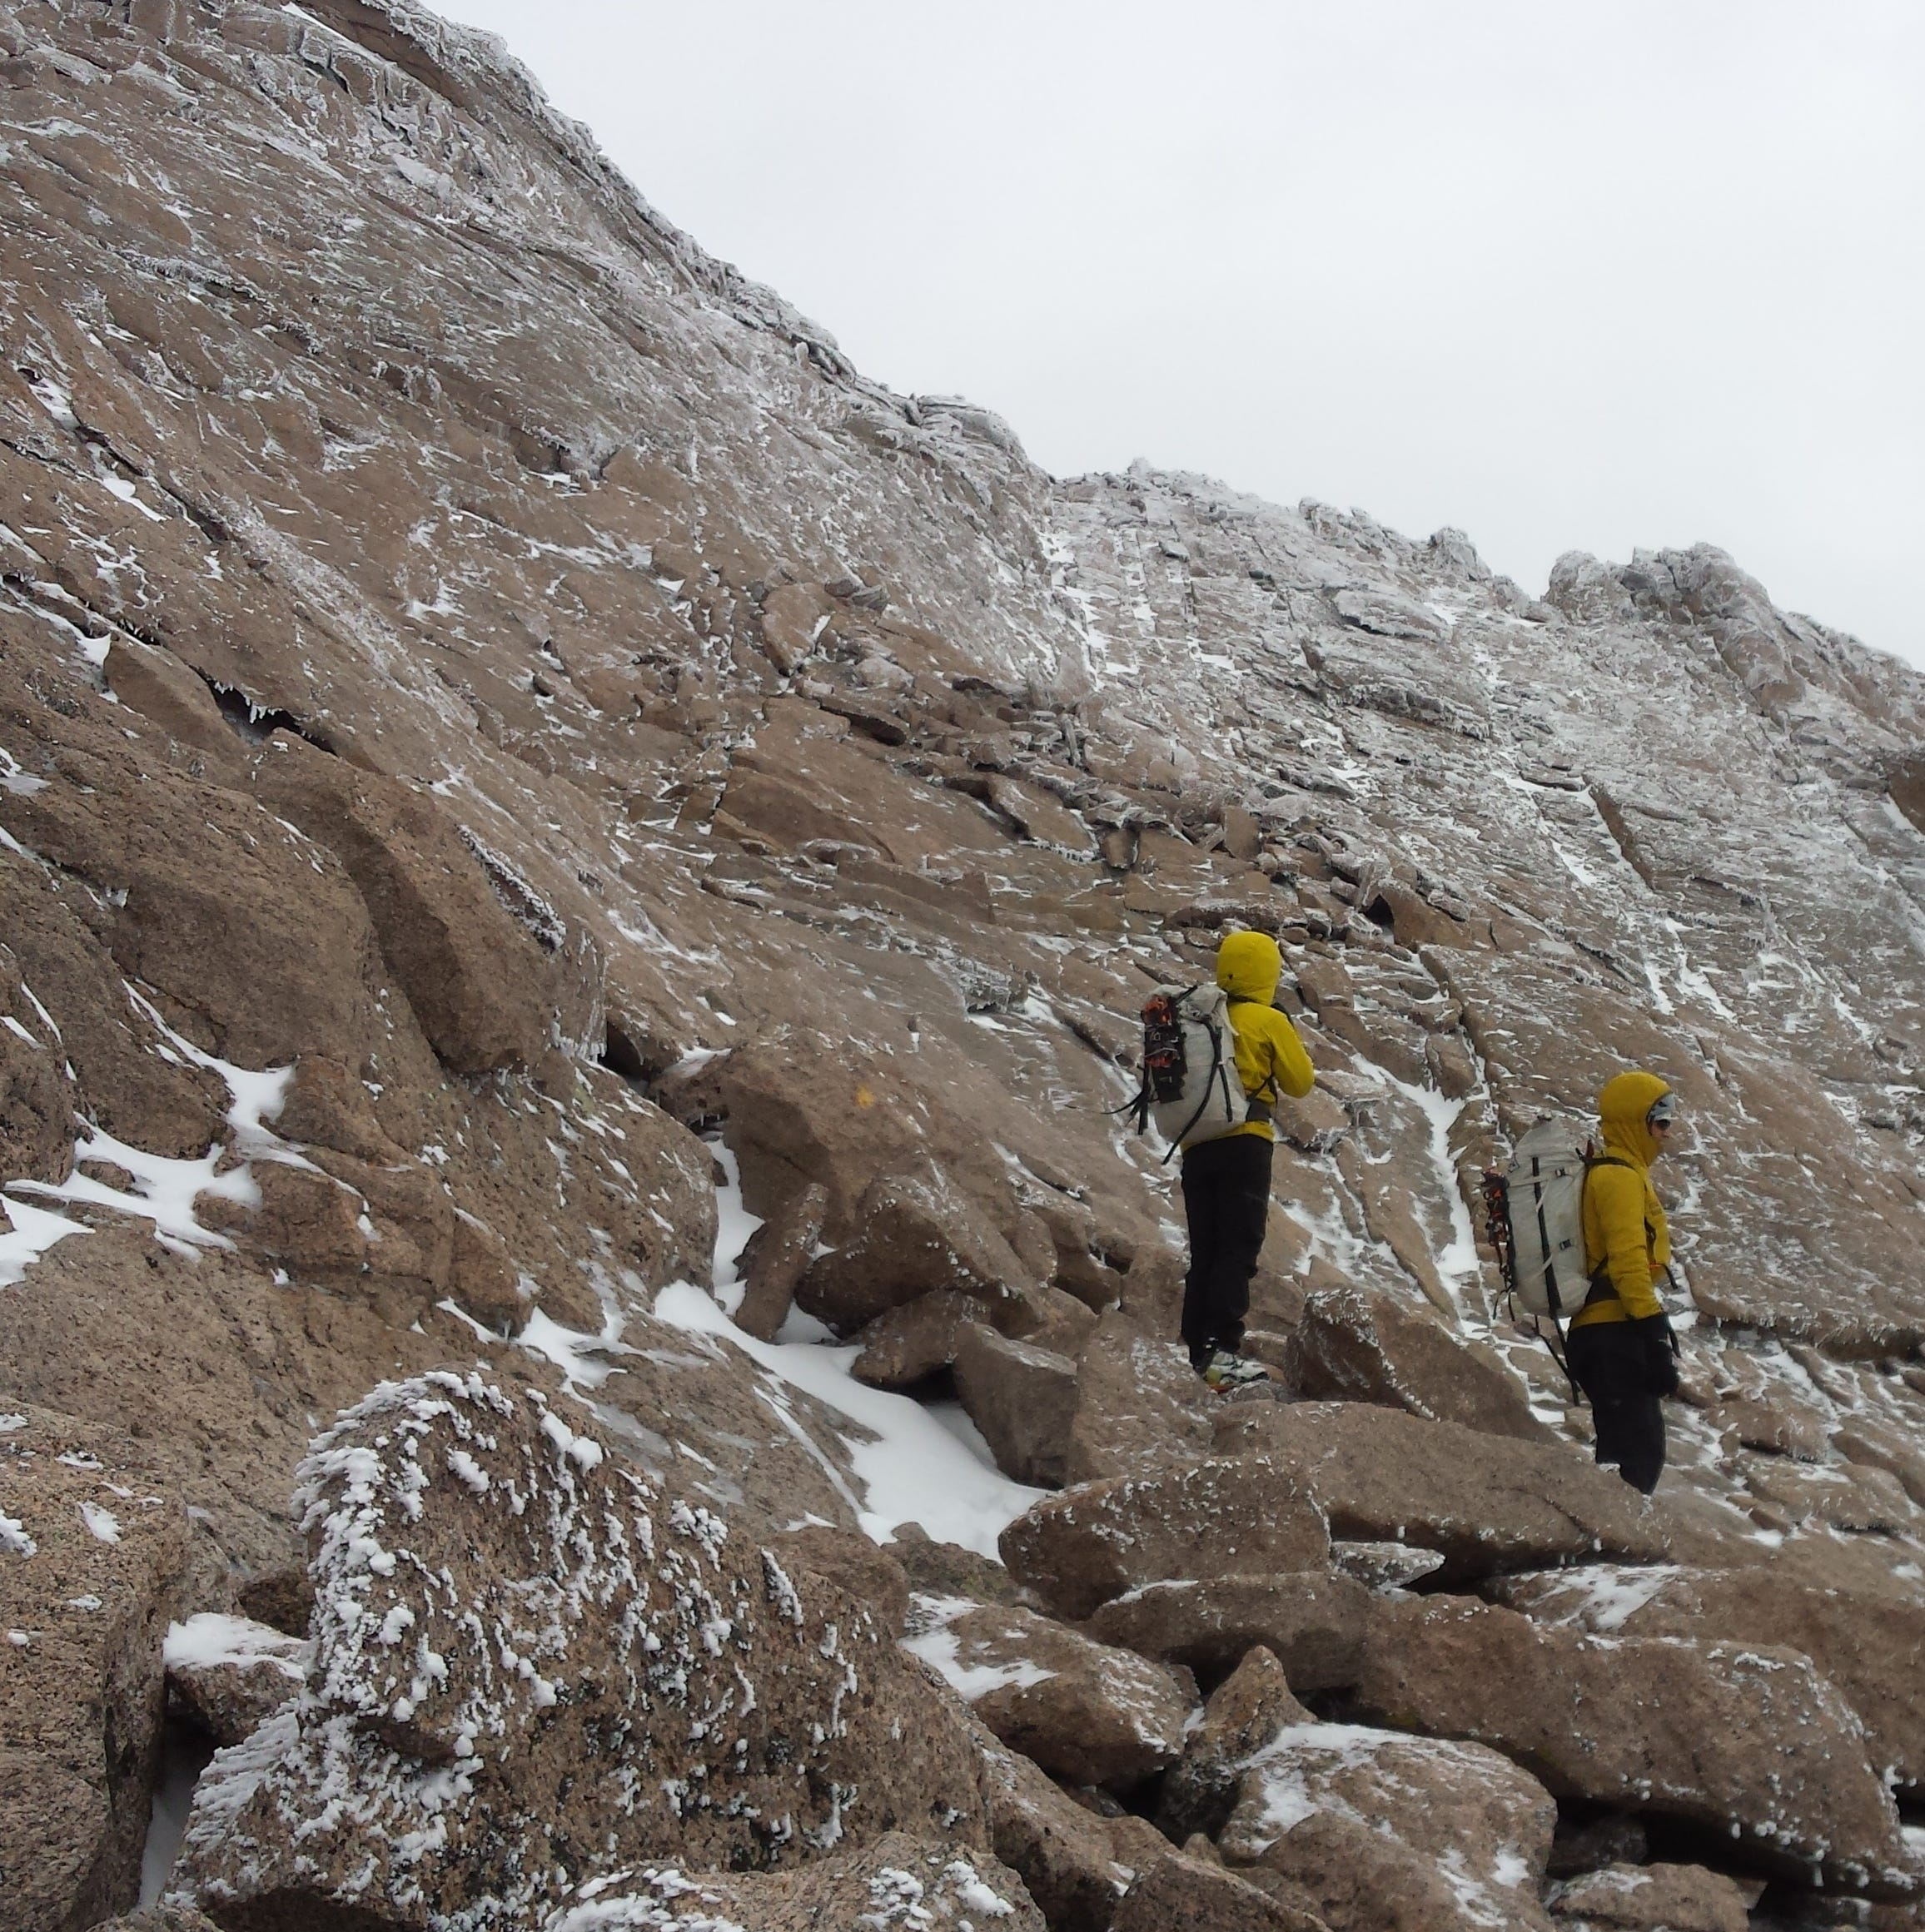 As weather worsens, still no clues in search for missing New Jersey hiker on Longs Peak